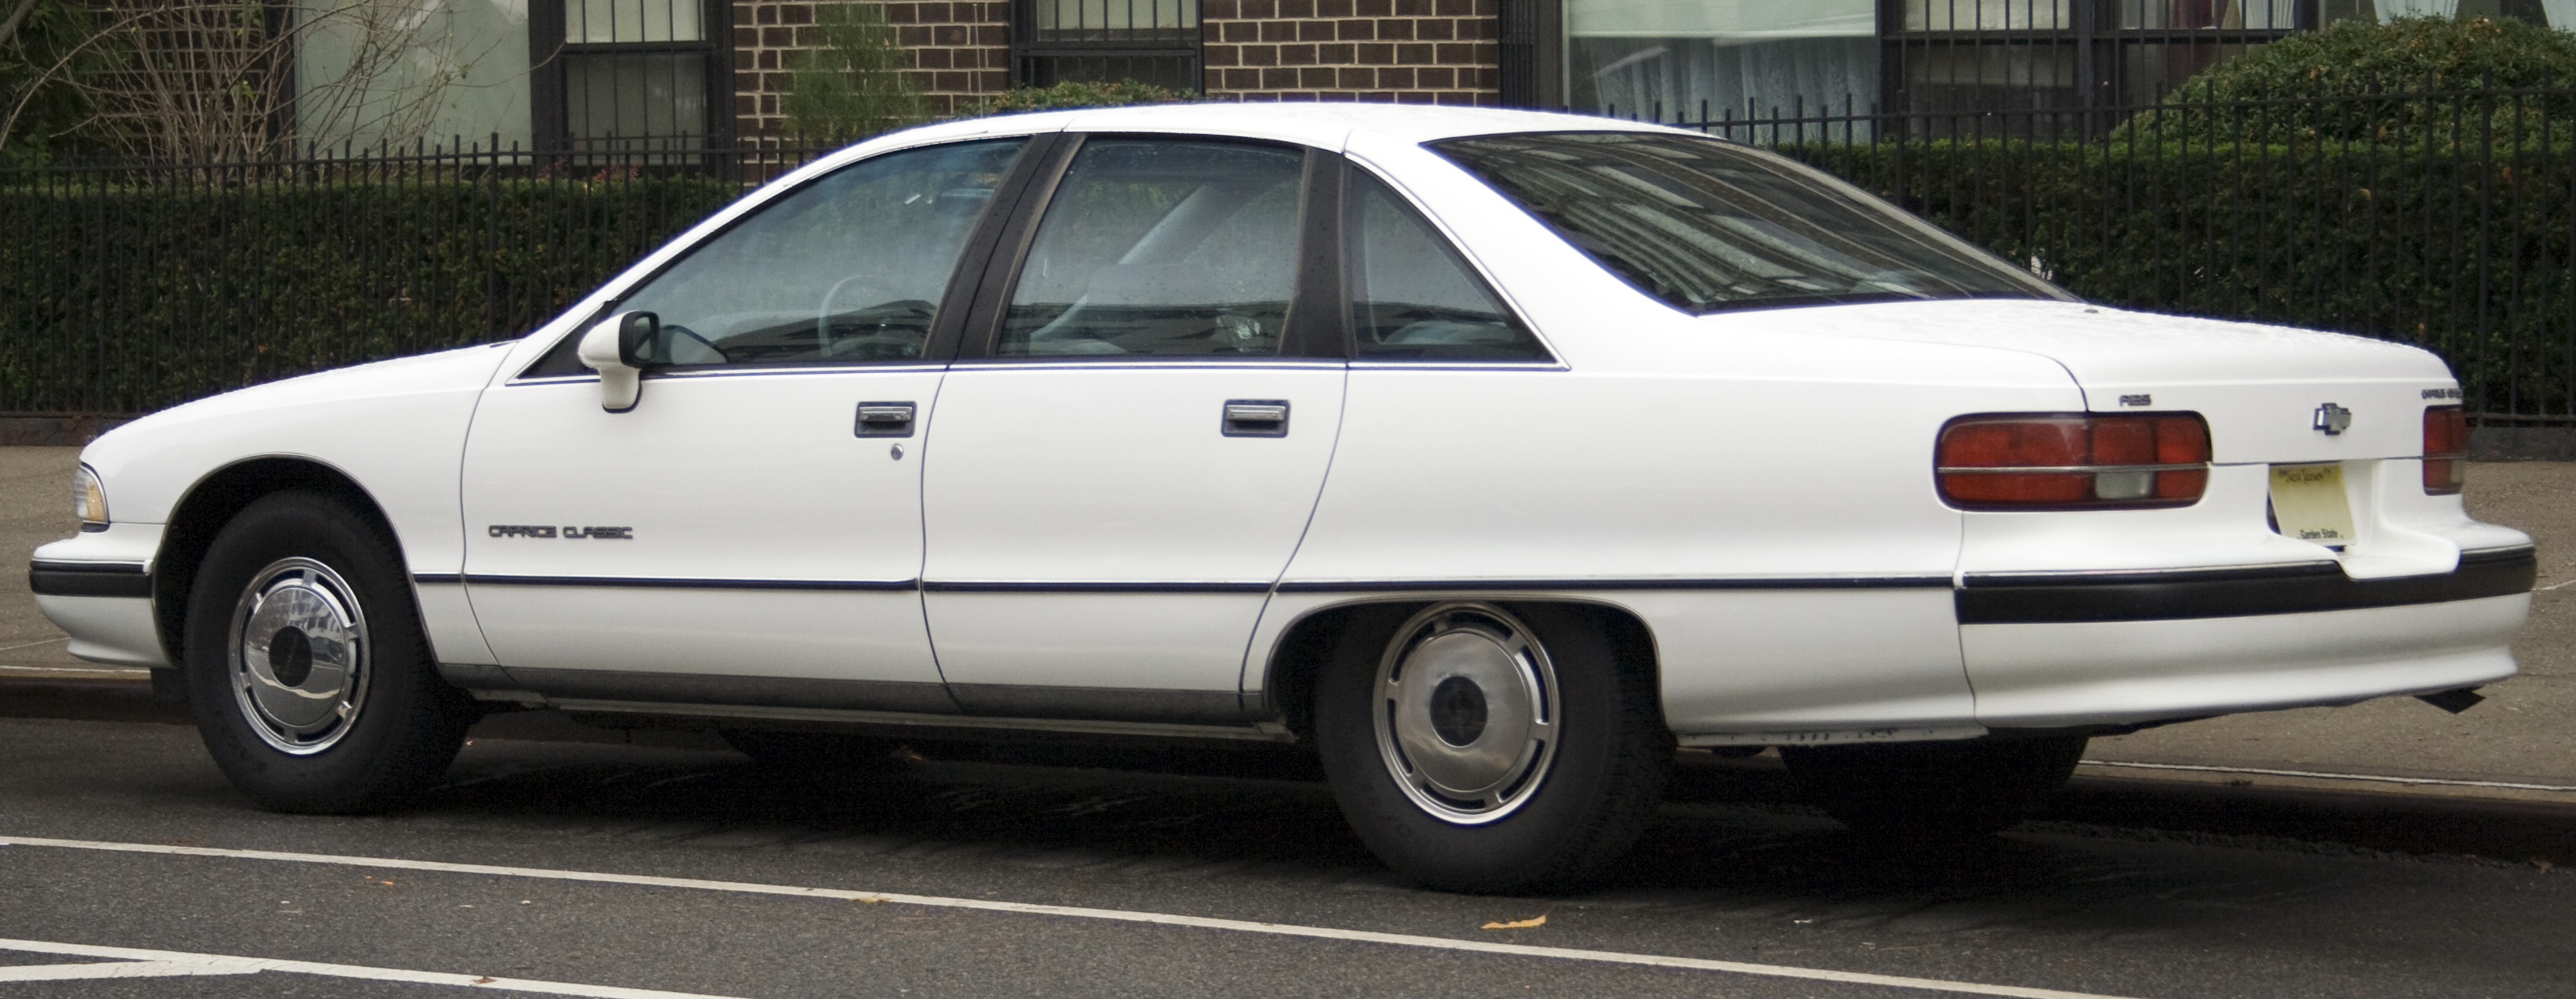 File 1991 caprice classic base jpg